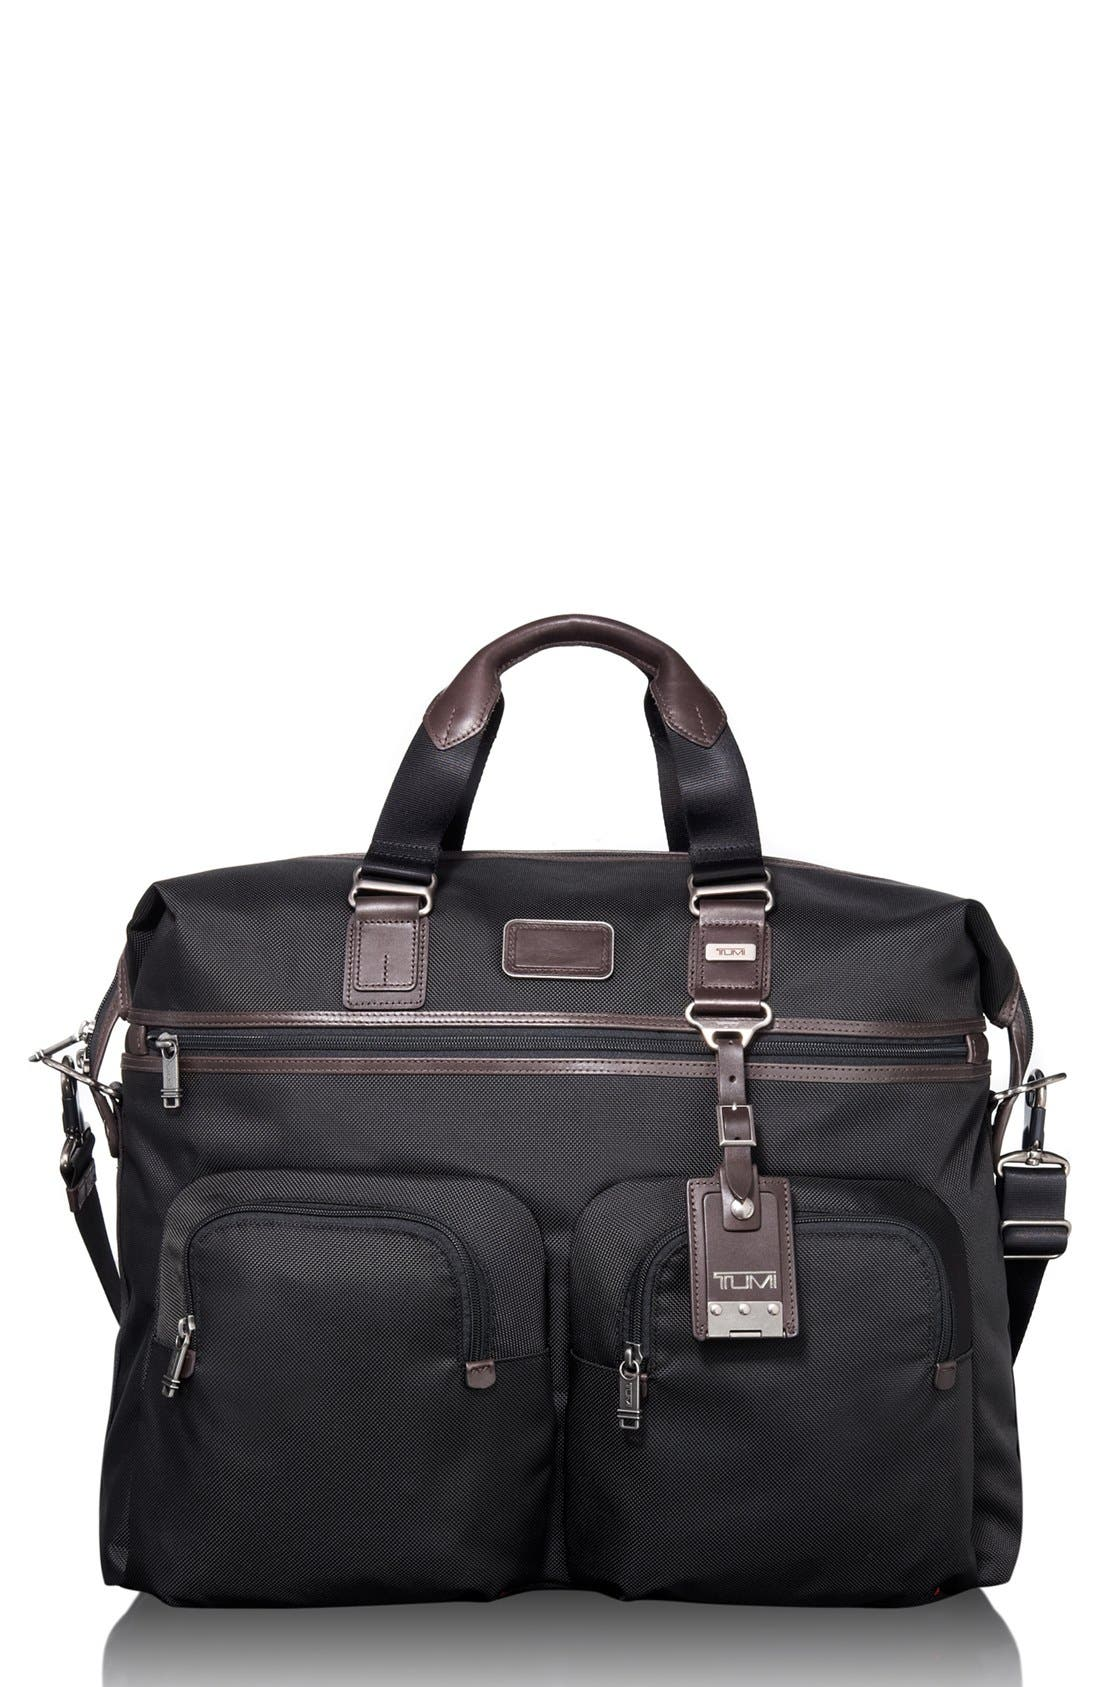 Alternate Image 1 Selected - Tumi 'Large Alpha Bravo - Kessler' Duffel Bag (20 Inch)